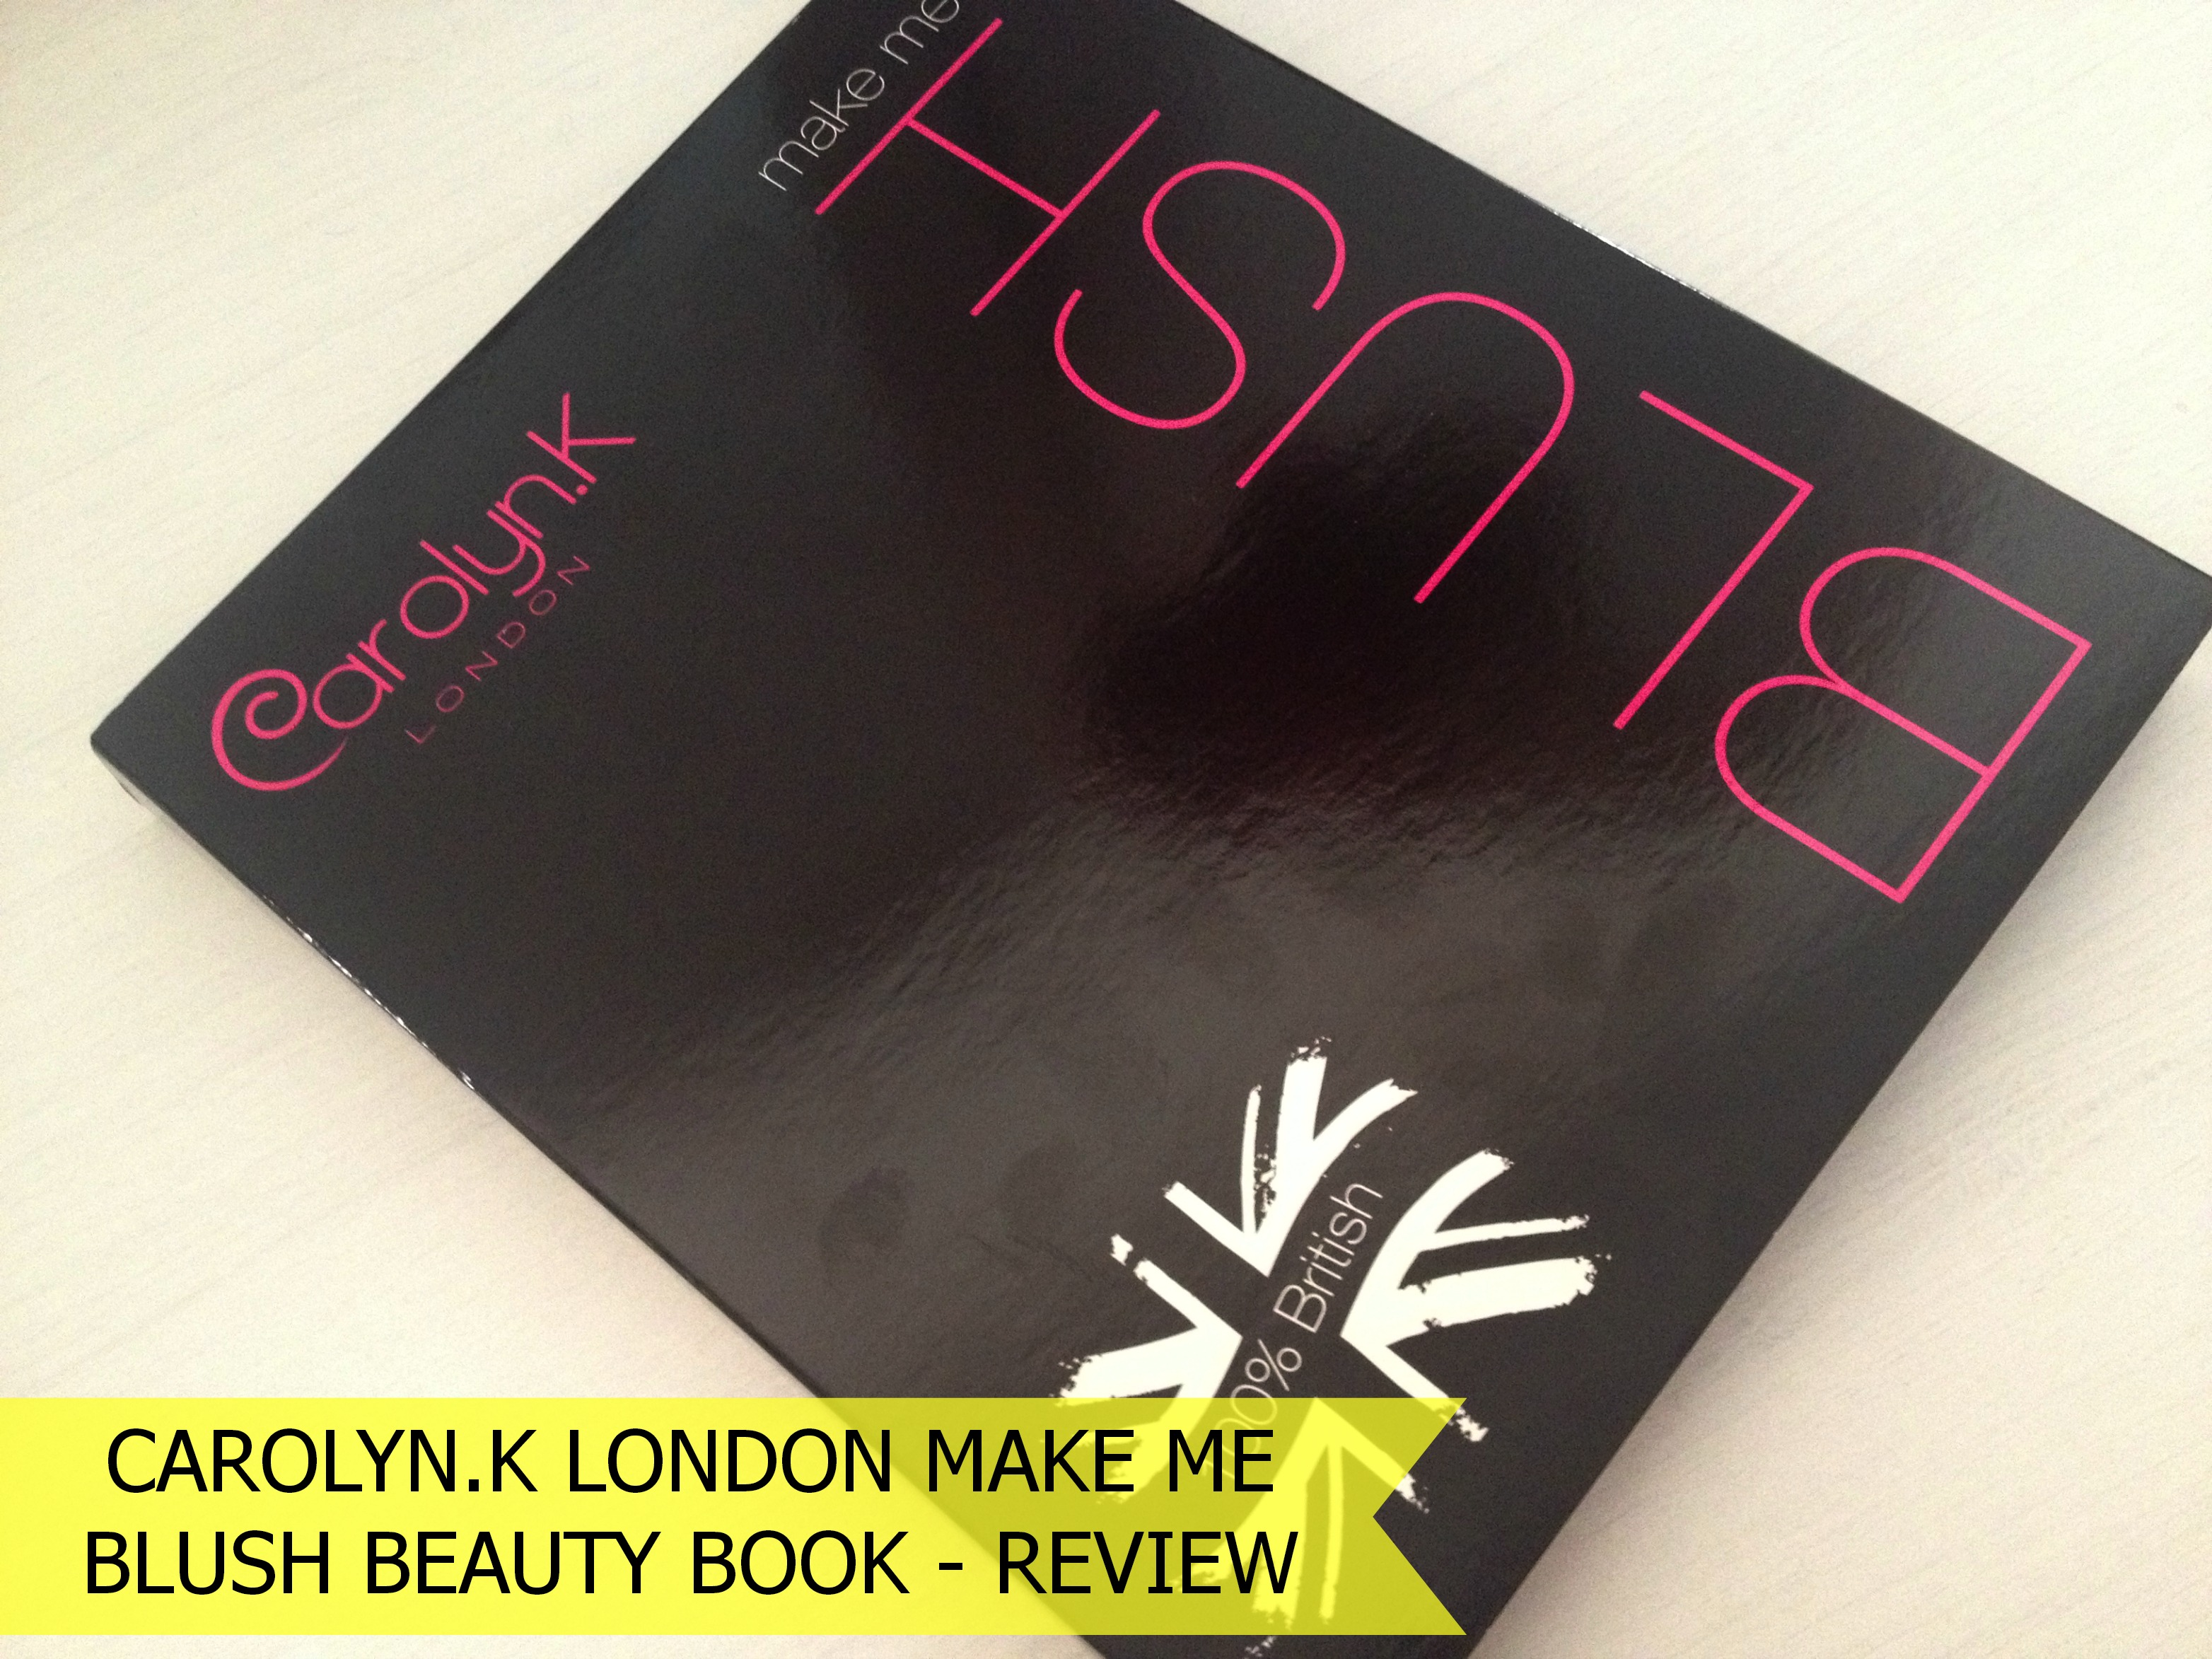 Carolyn_K_London_Make_Me_Blush_Beauty_Book (4)